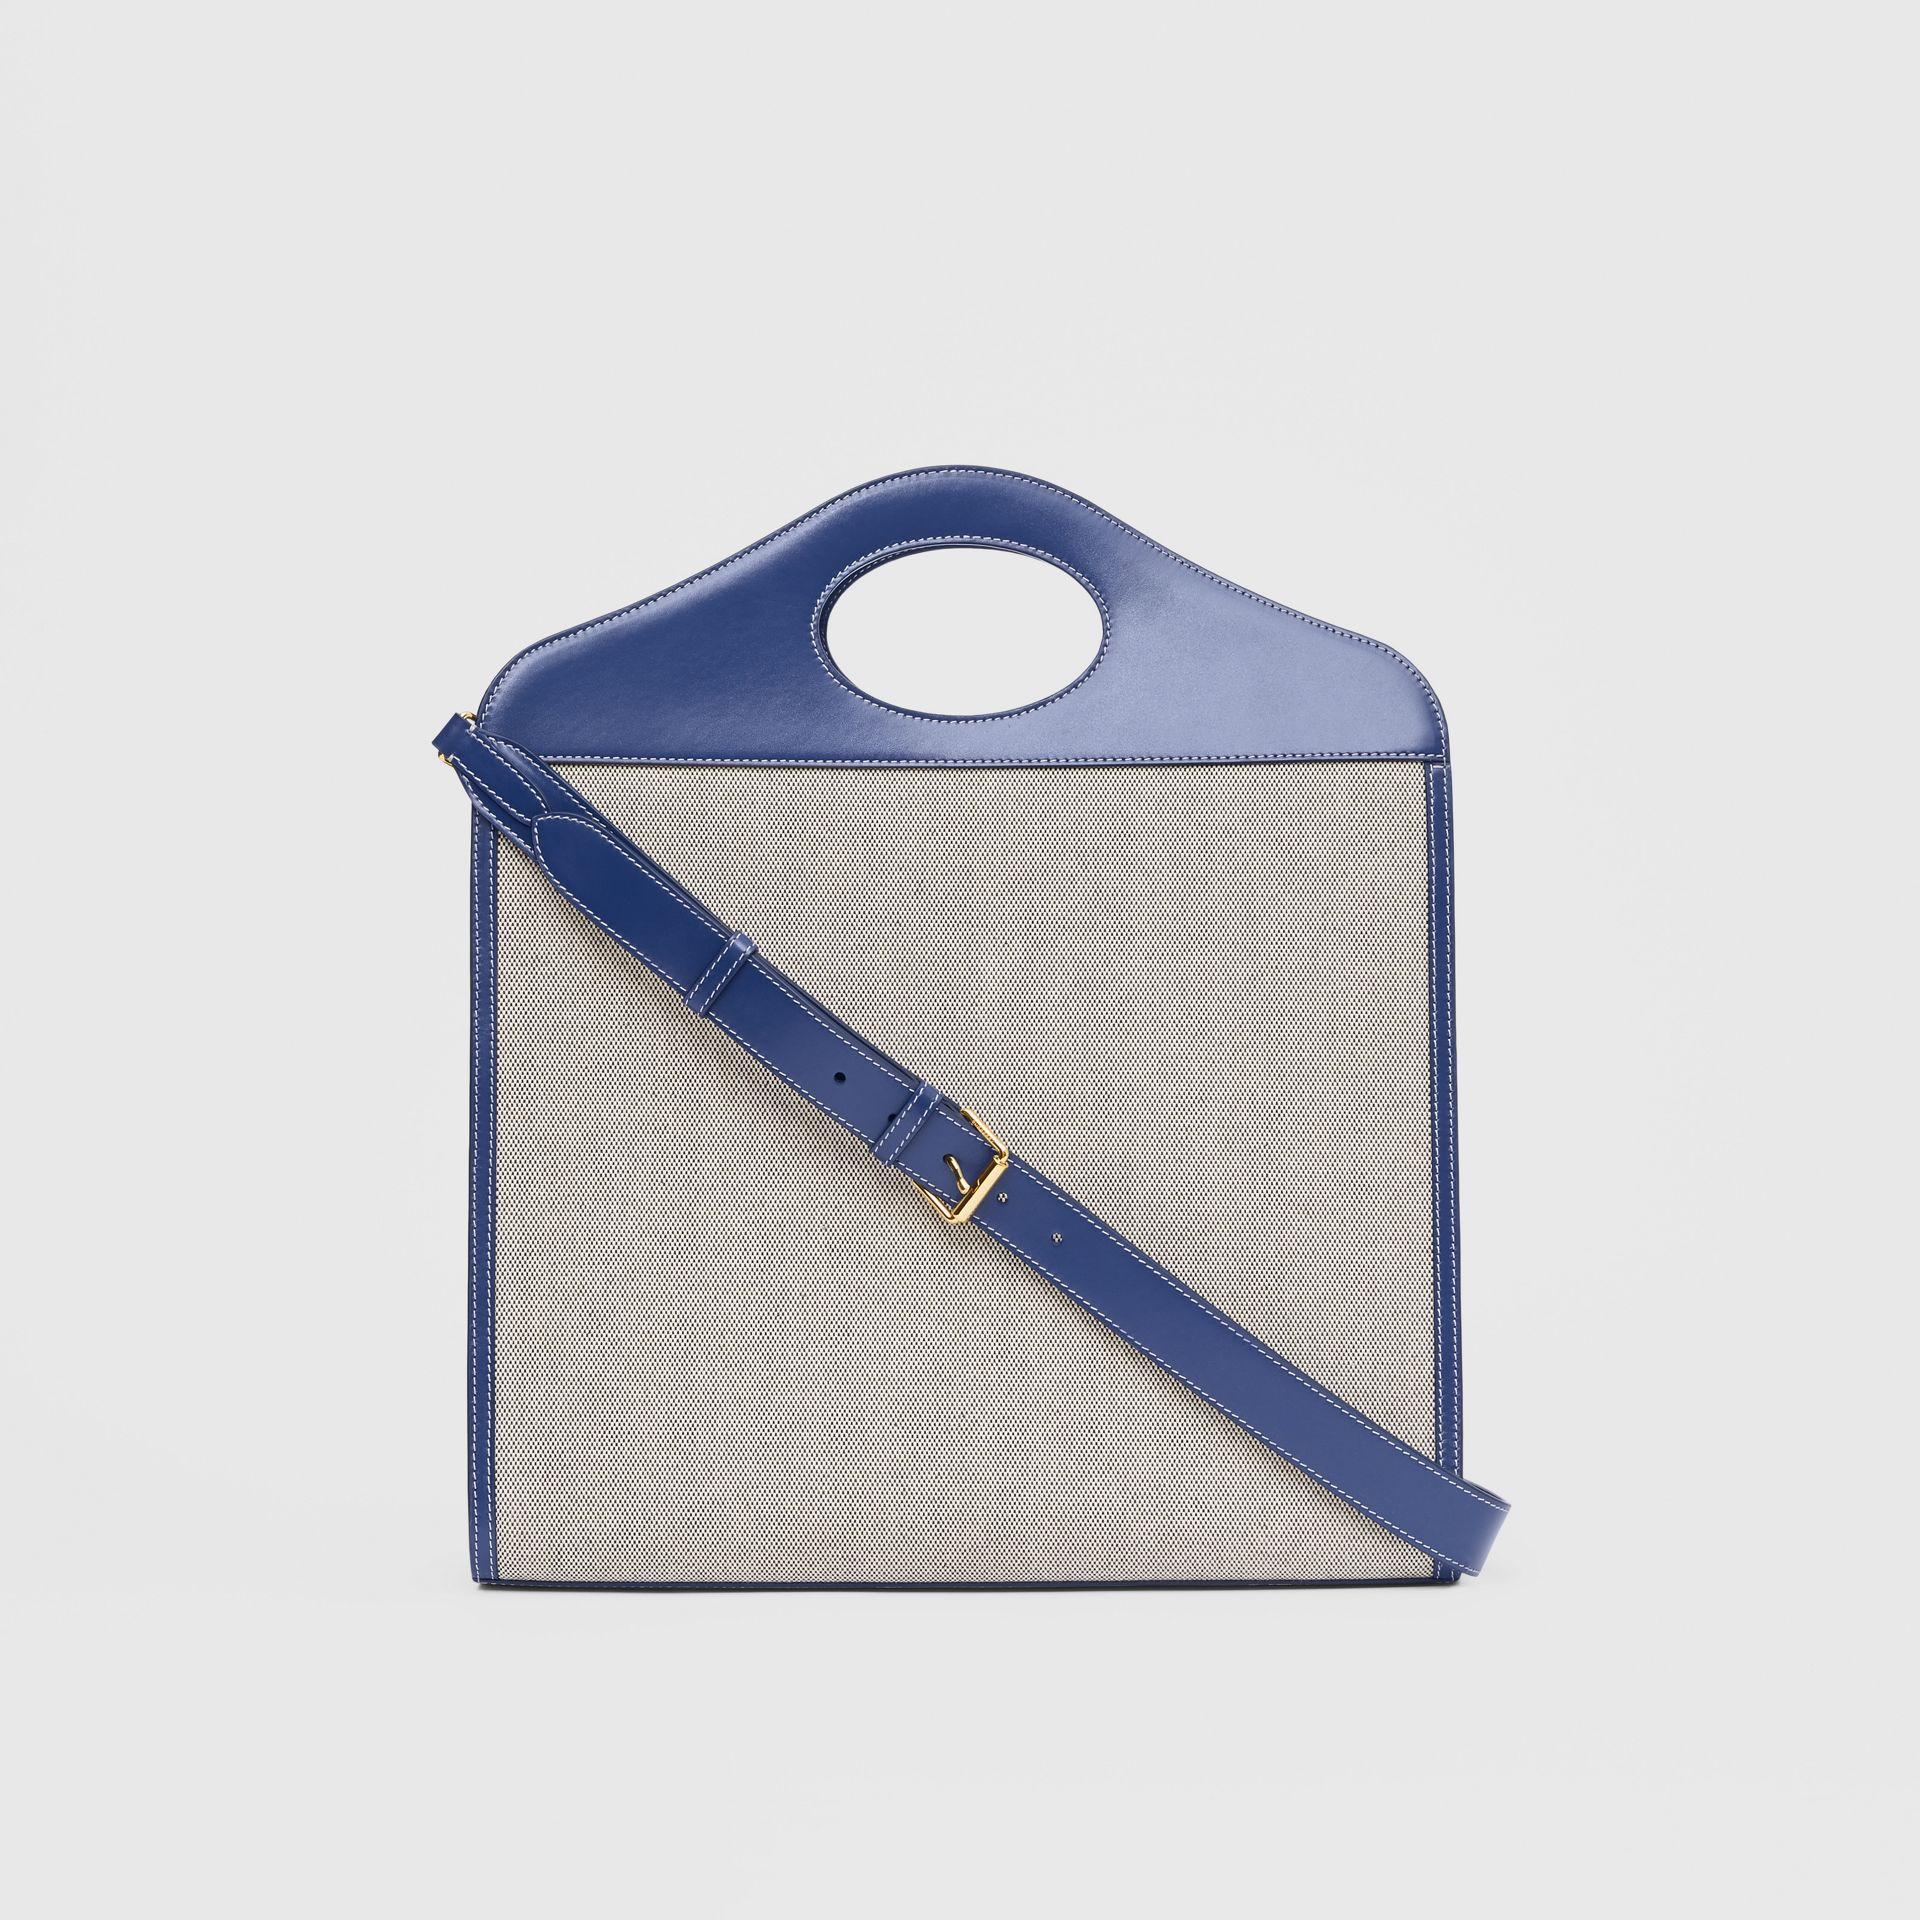 Medium Two-tone Canvas and Leather Pocket Bag in Ink Navy - Women | Burberry - gallery image 7